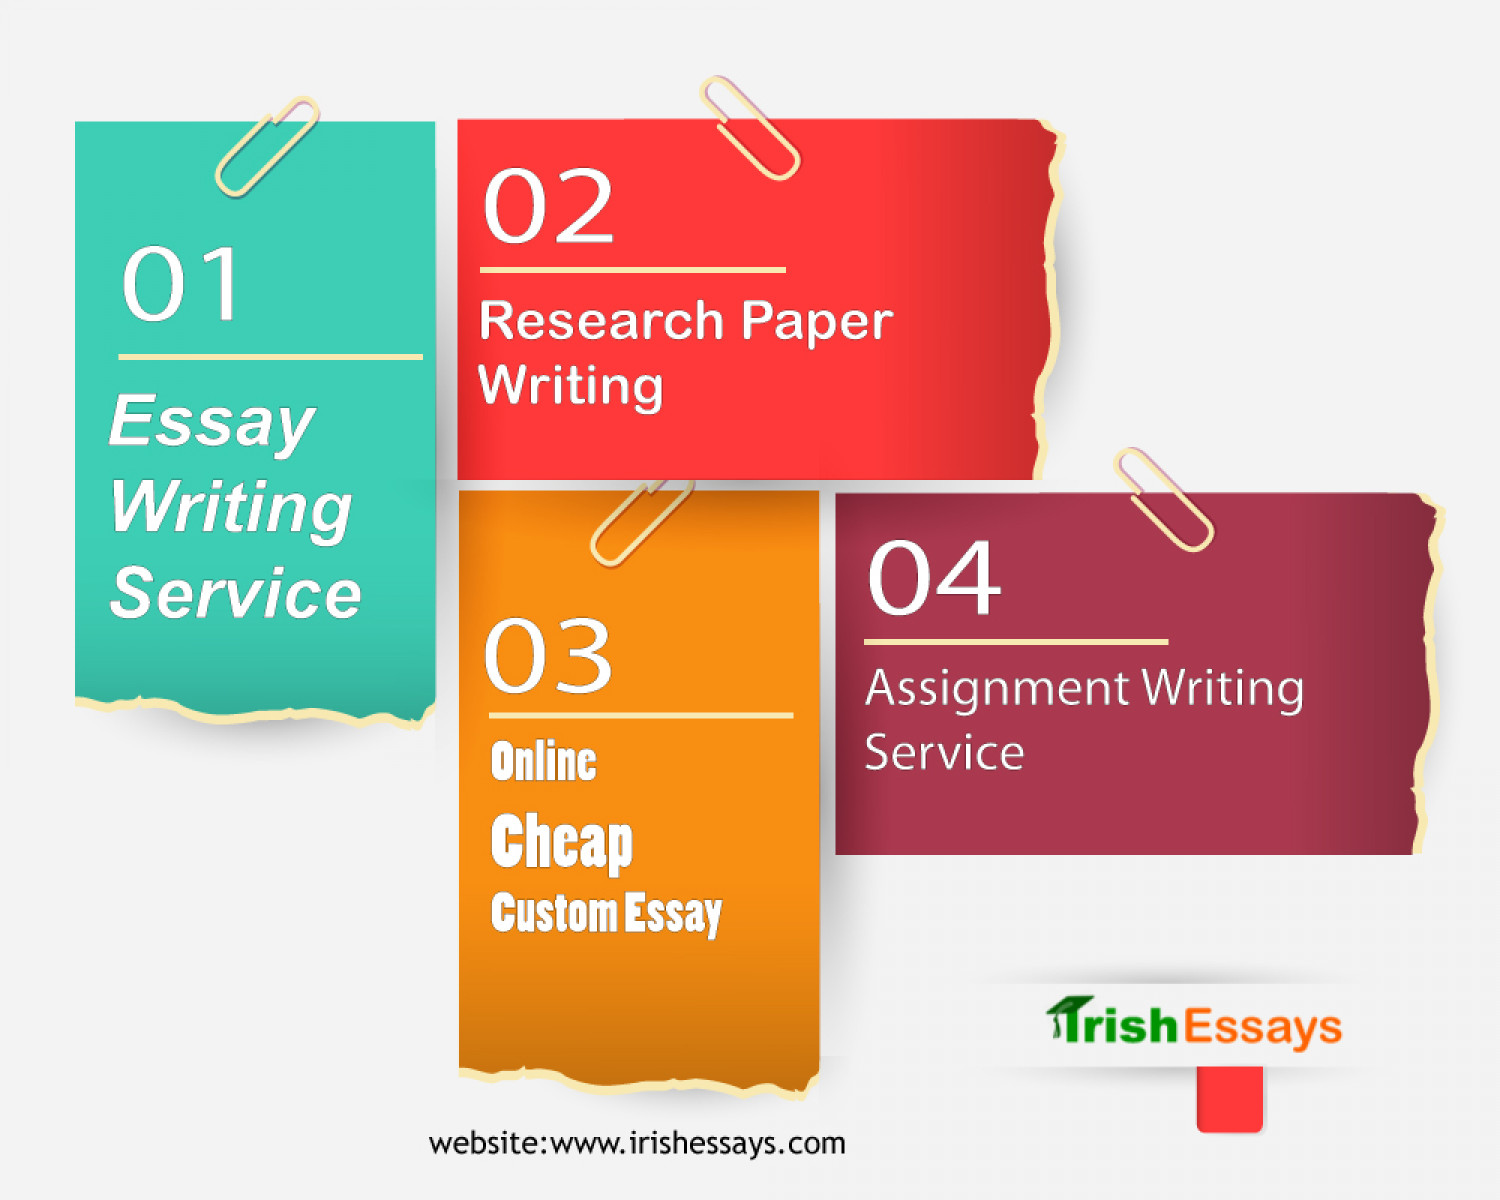 custom essay online essay writing service review com buy custom  write essays for pay research pay someone to write your essay millicent rogers museum essay writer